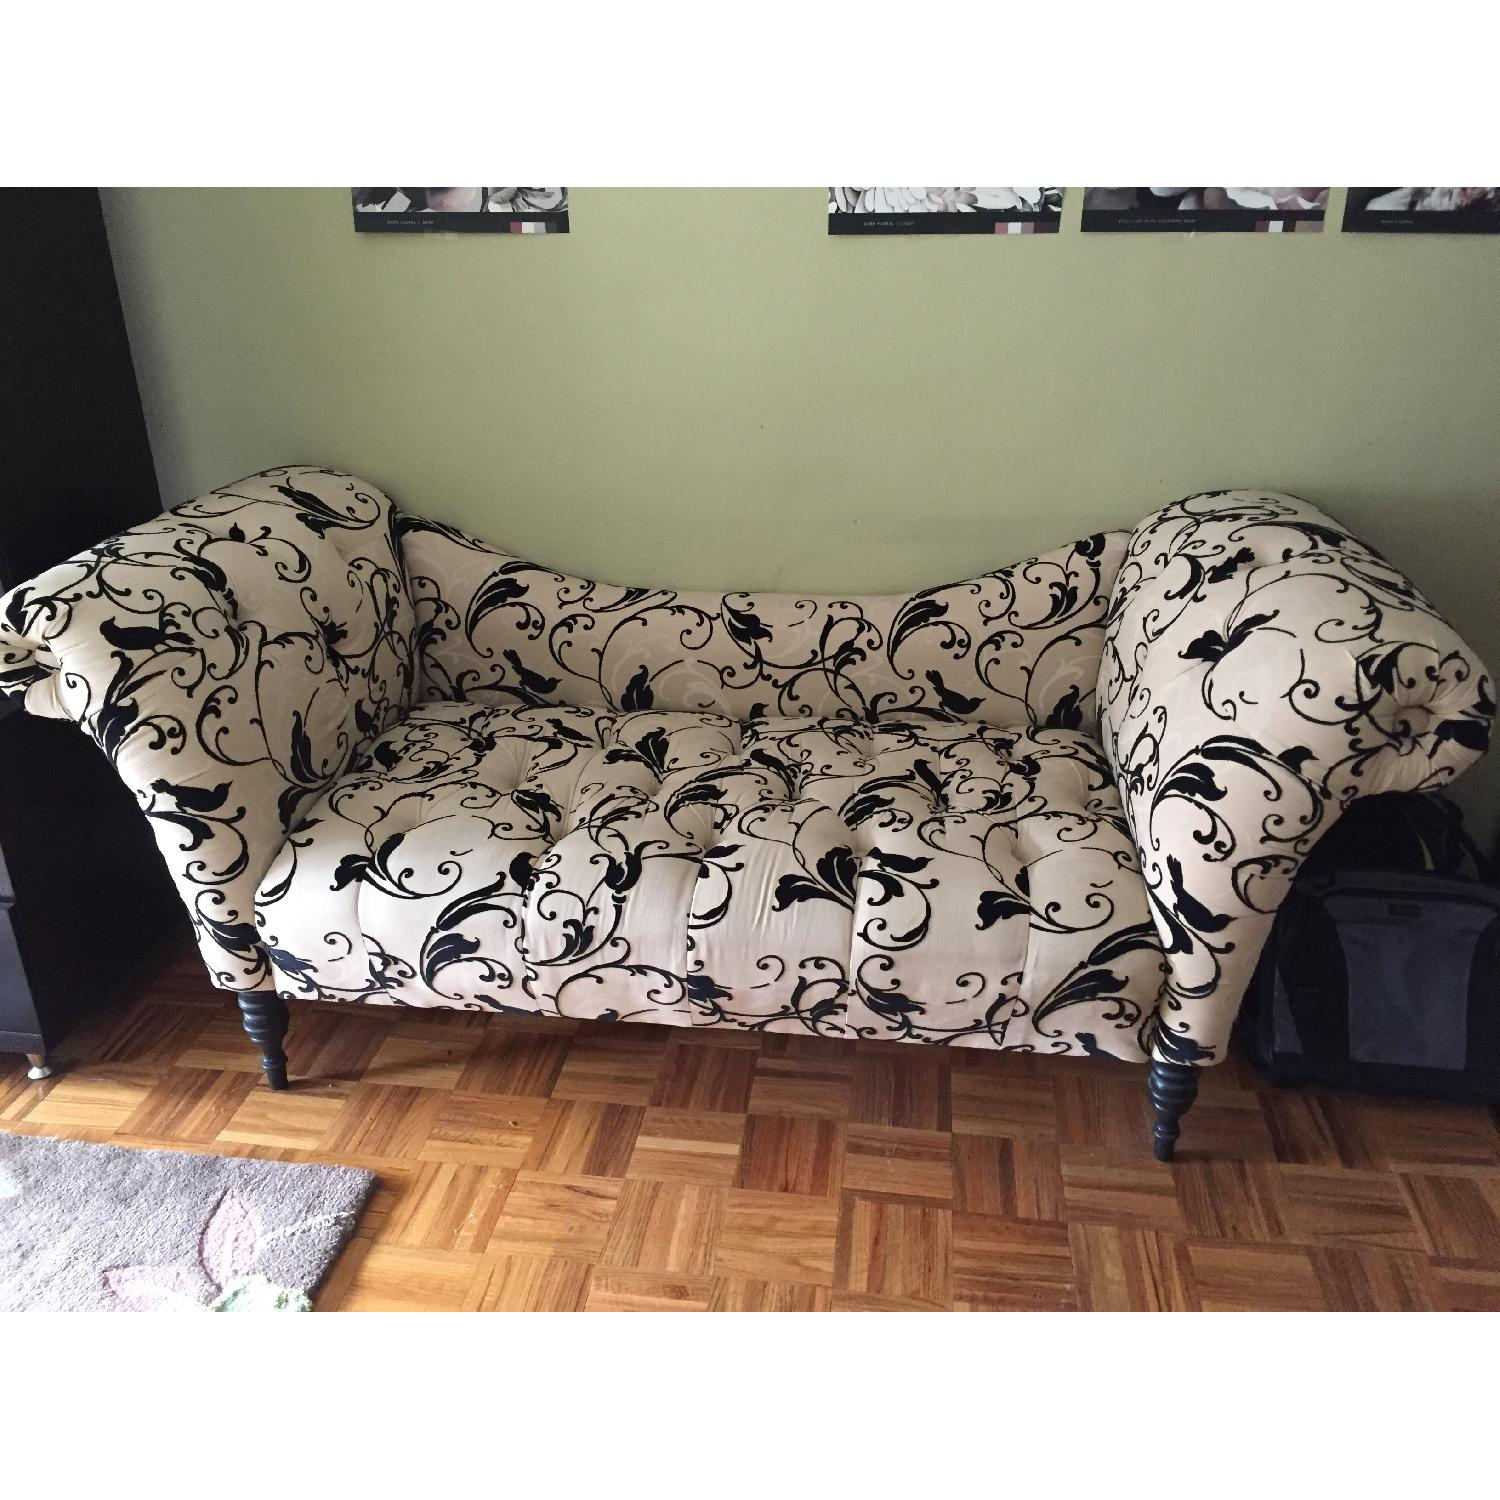 Urban Outfitters Printed Chaise Lounge in Black & Tan - image-2